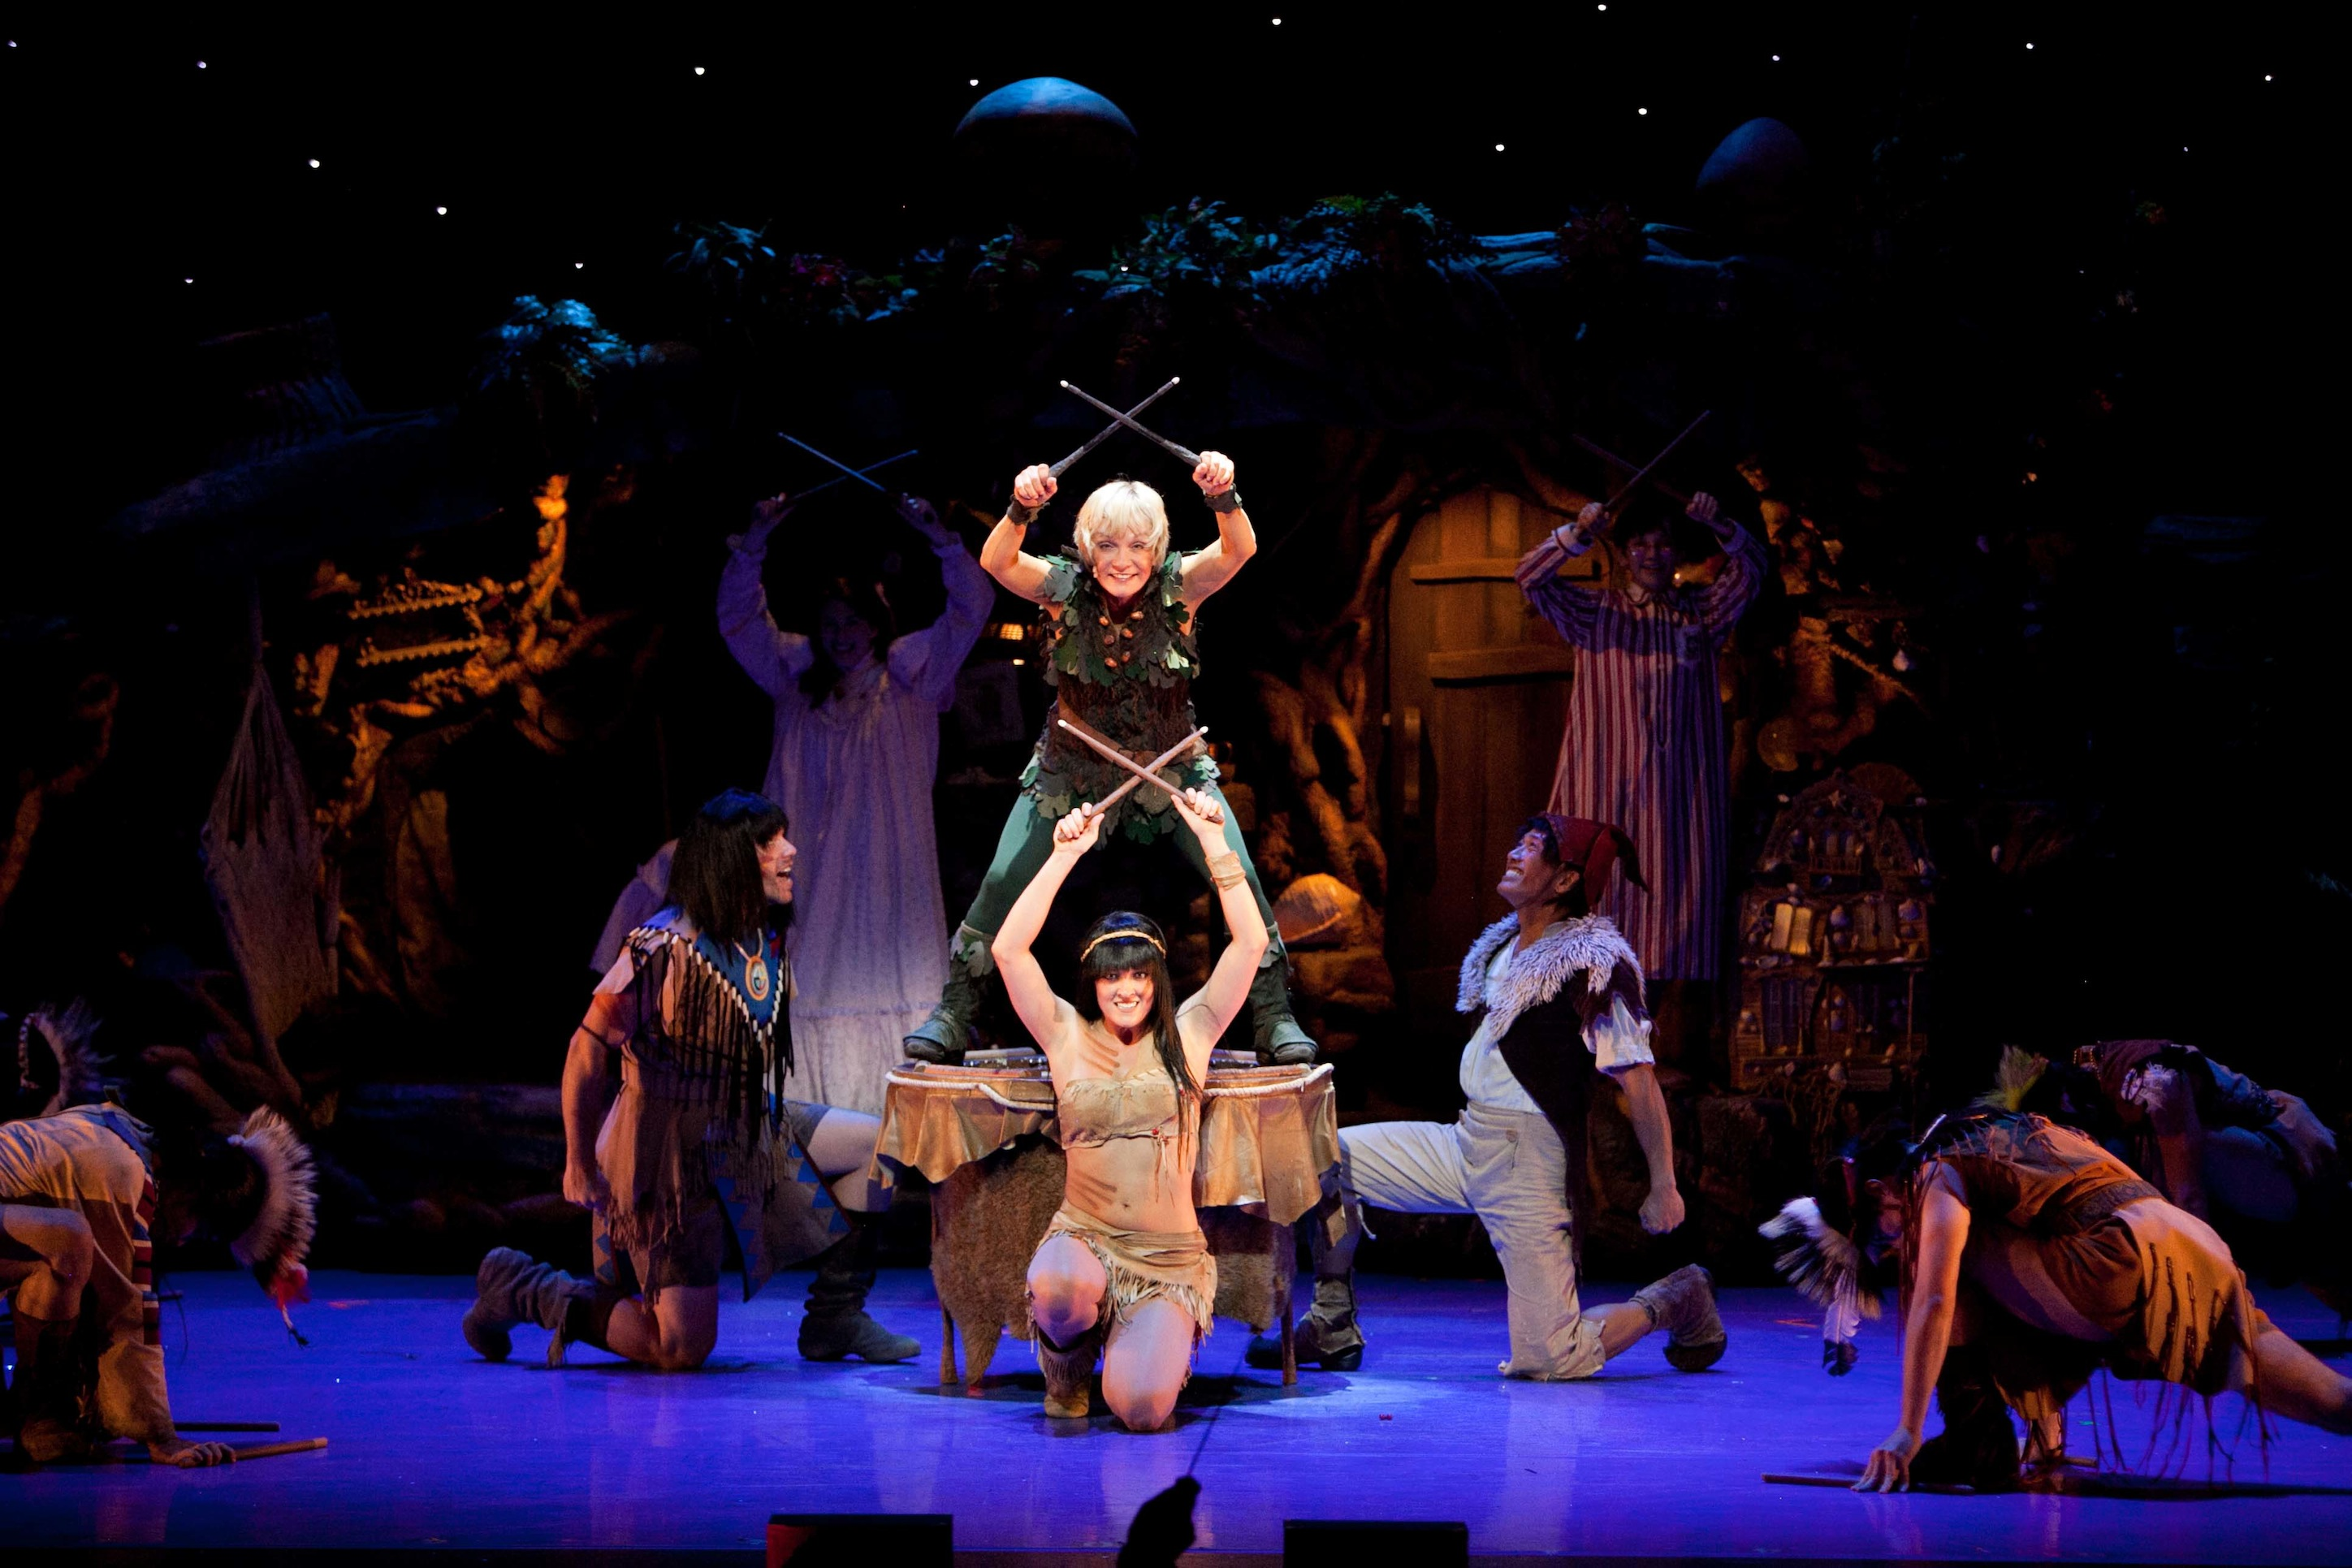 Cathy rigby takes flight as peter pan at the pantages theatre rockin